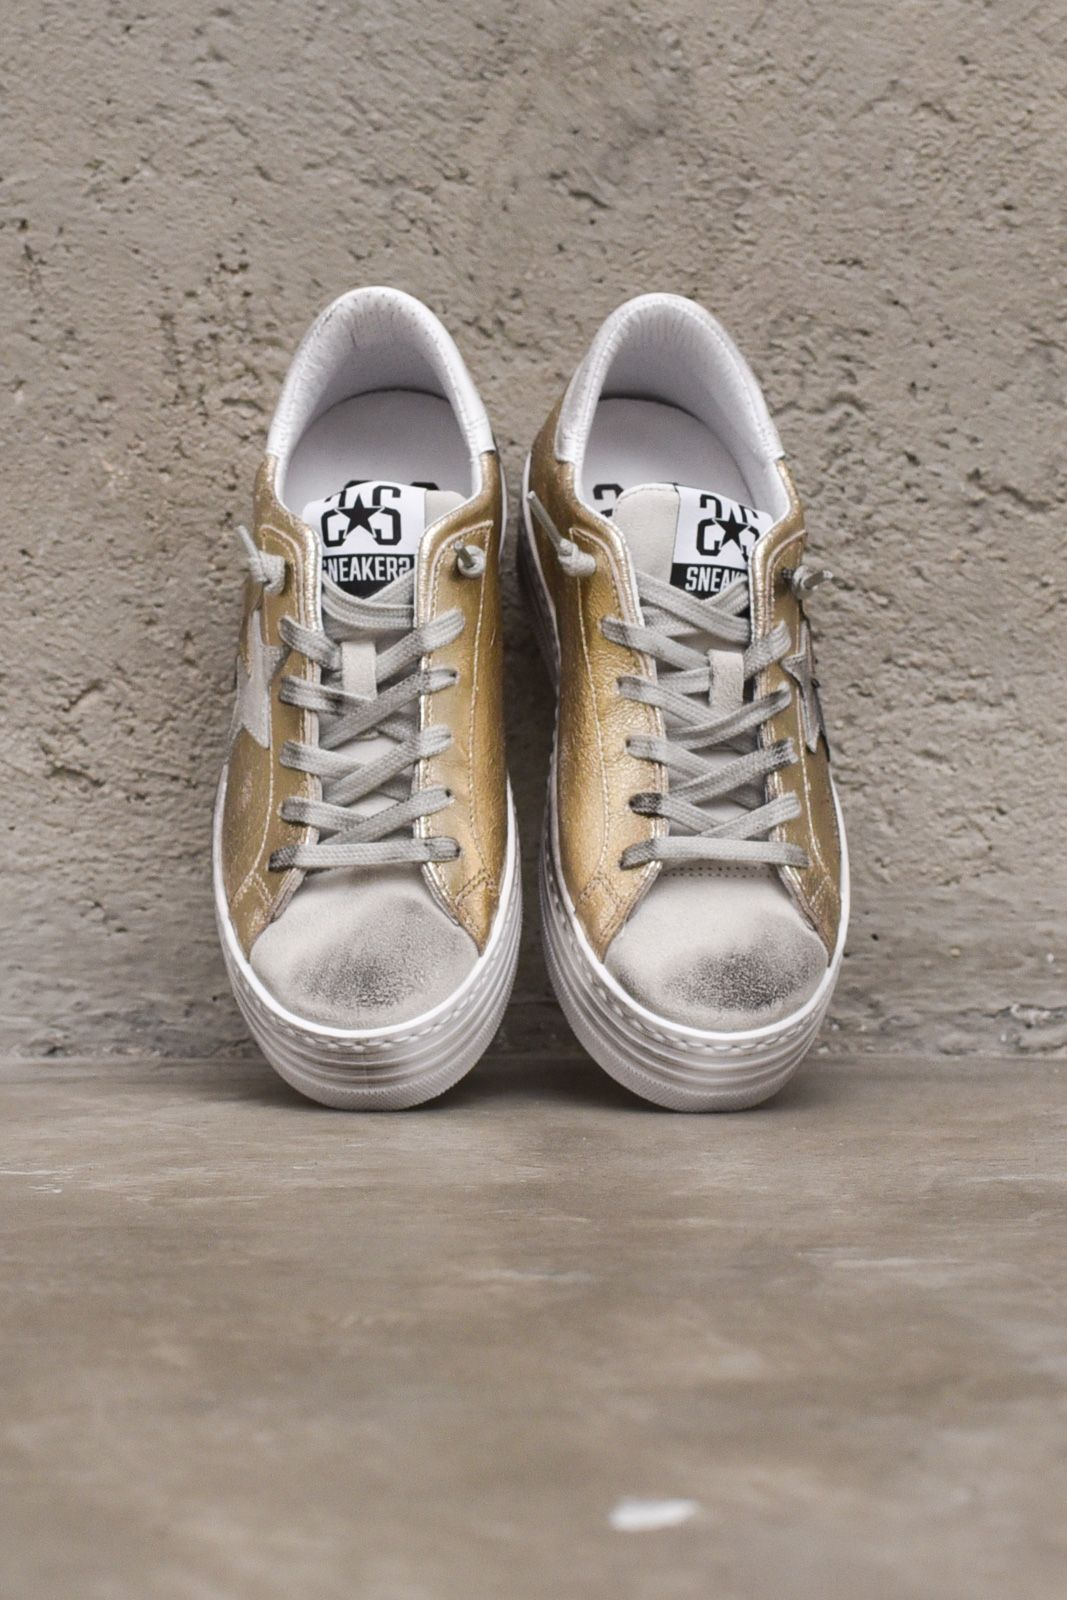 Women's low snekaer shoes used with logo gold. 2SD3063-005-BORO